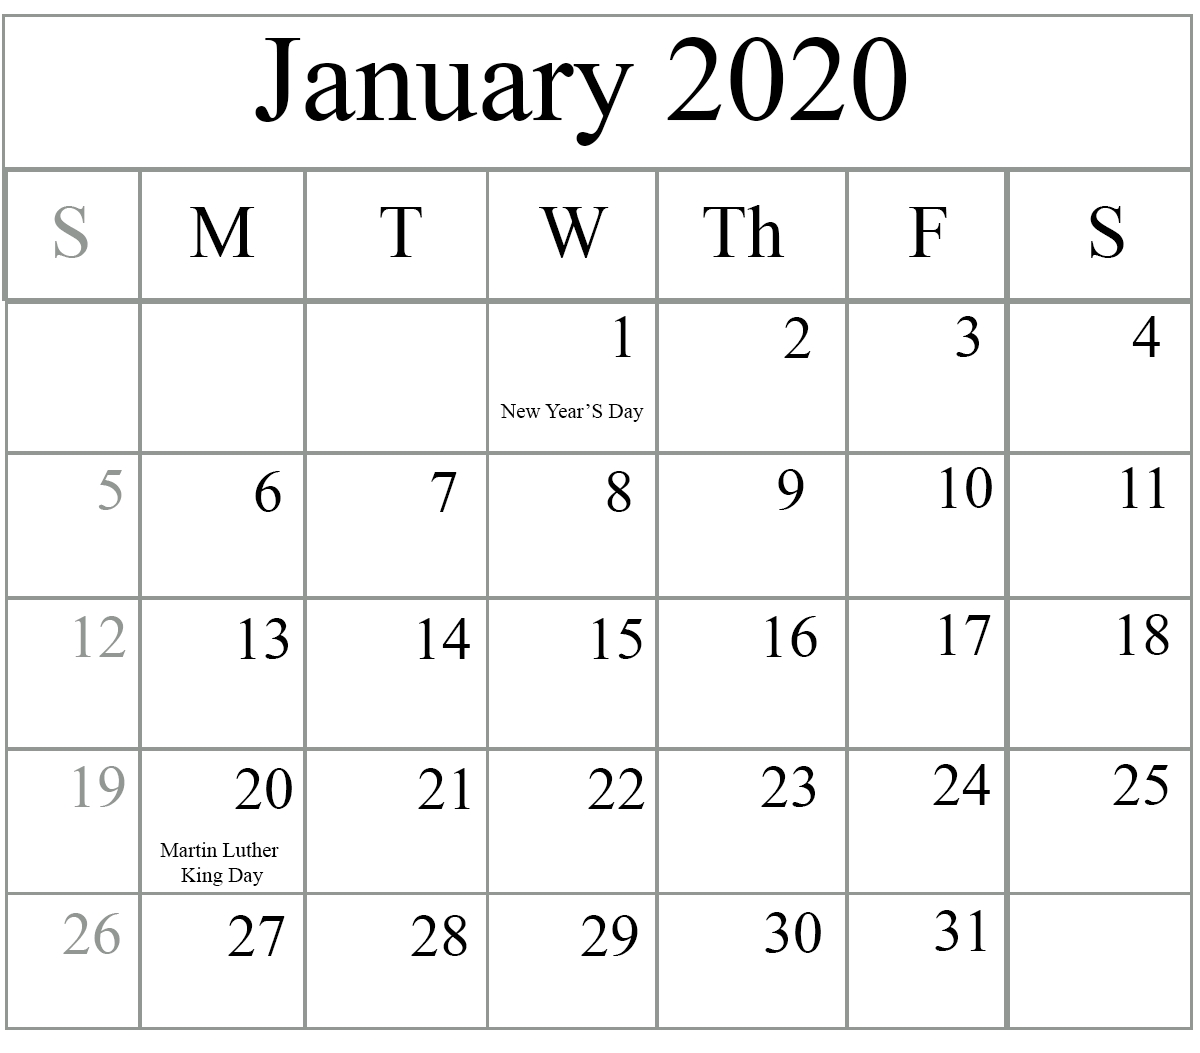 Blank January 2020 Calendar Printable In Pdf, Word, Excel-January 2020 Calendar In Excel